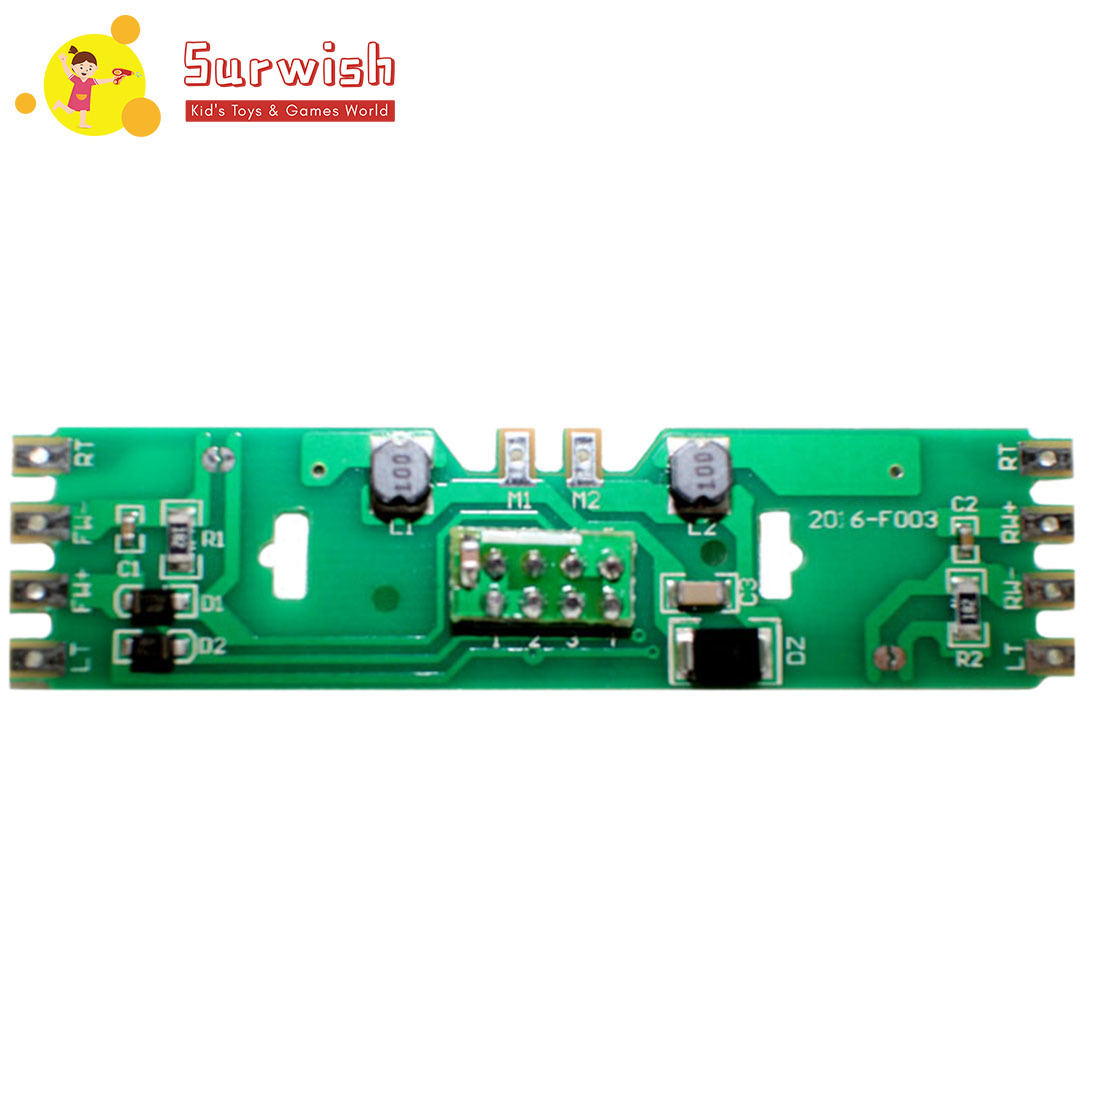 HO 1:87 Scale Train Model PCB Circuit Board Without Resistance For Bachmann Train Model - Upgrade Version